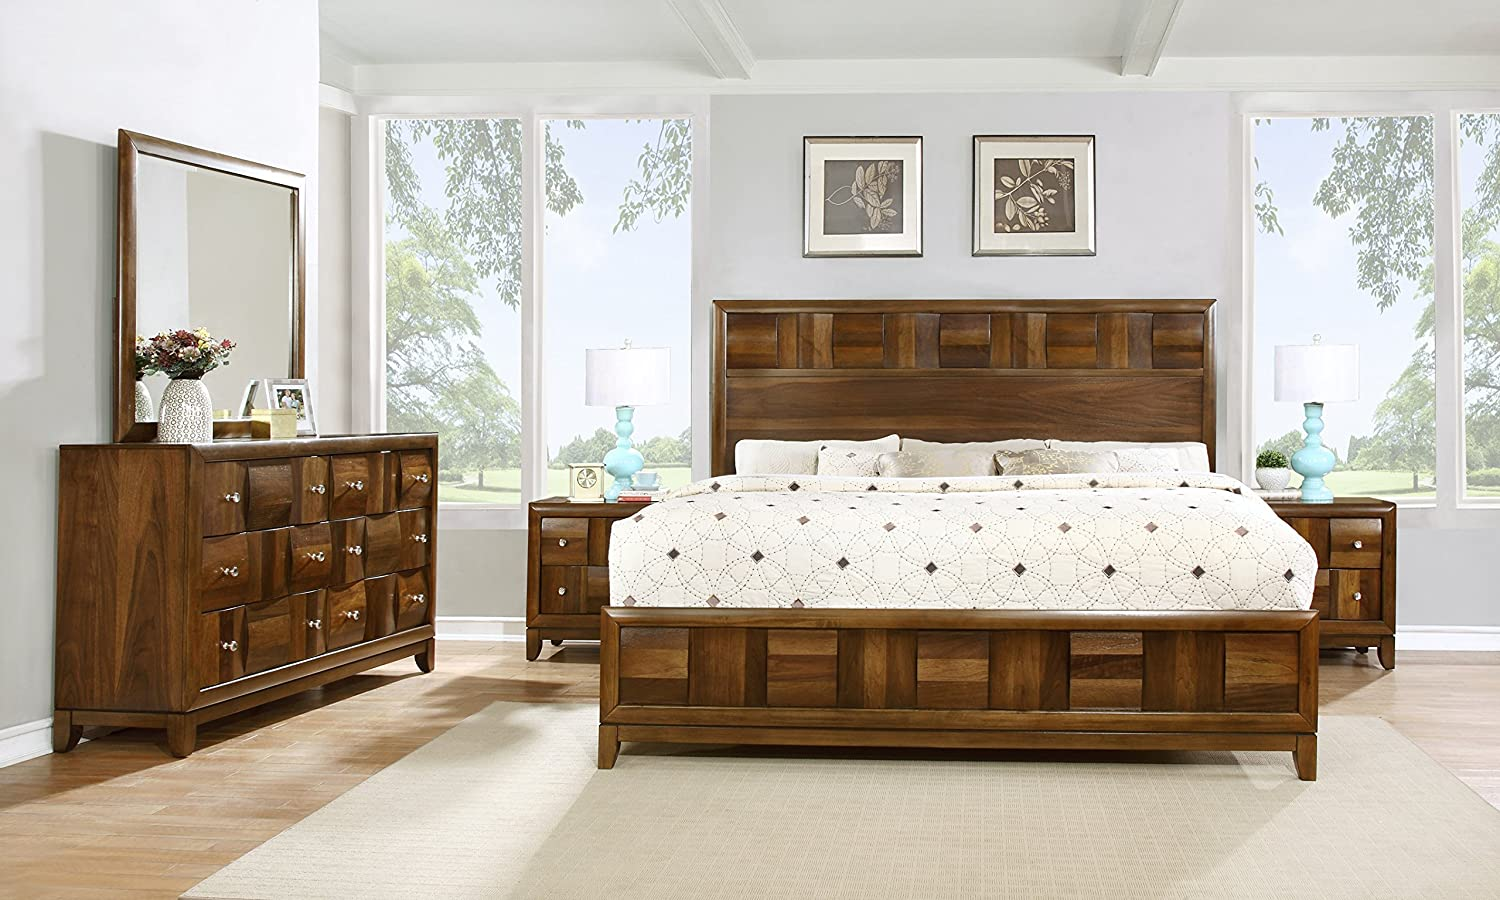 Roundhill Furniture Calais Solid Wood Construction Bedroom Set with Bed - Dresser - Mirror - 2 Night Stands - King - Walnut